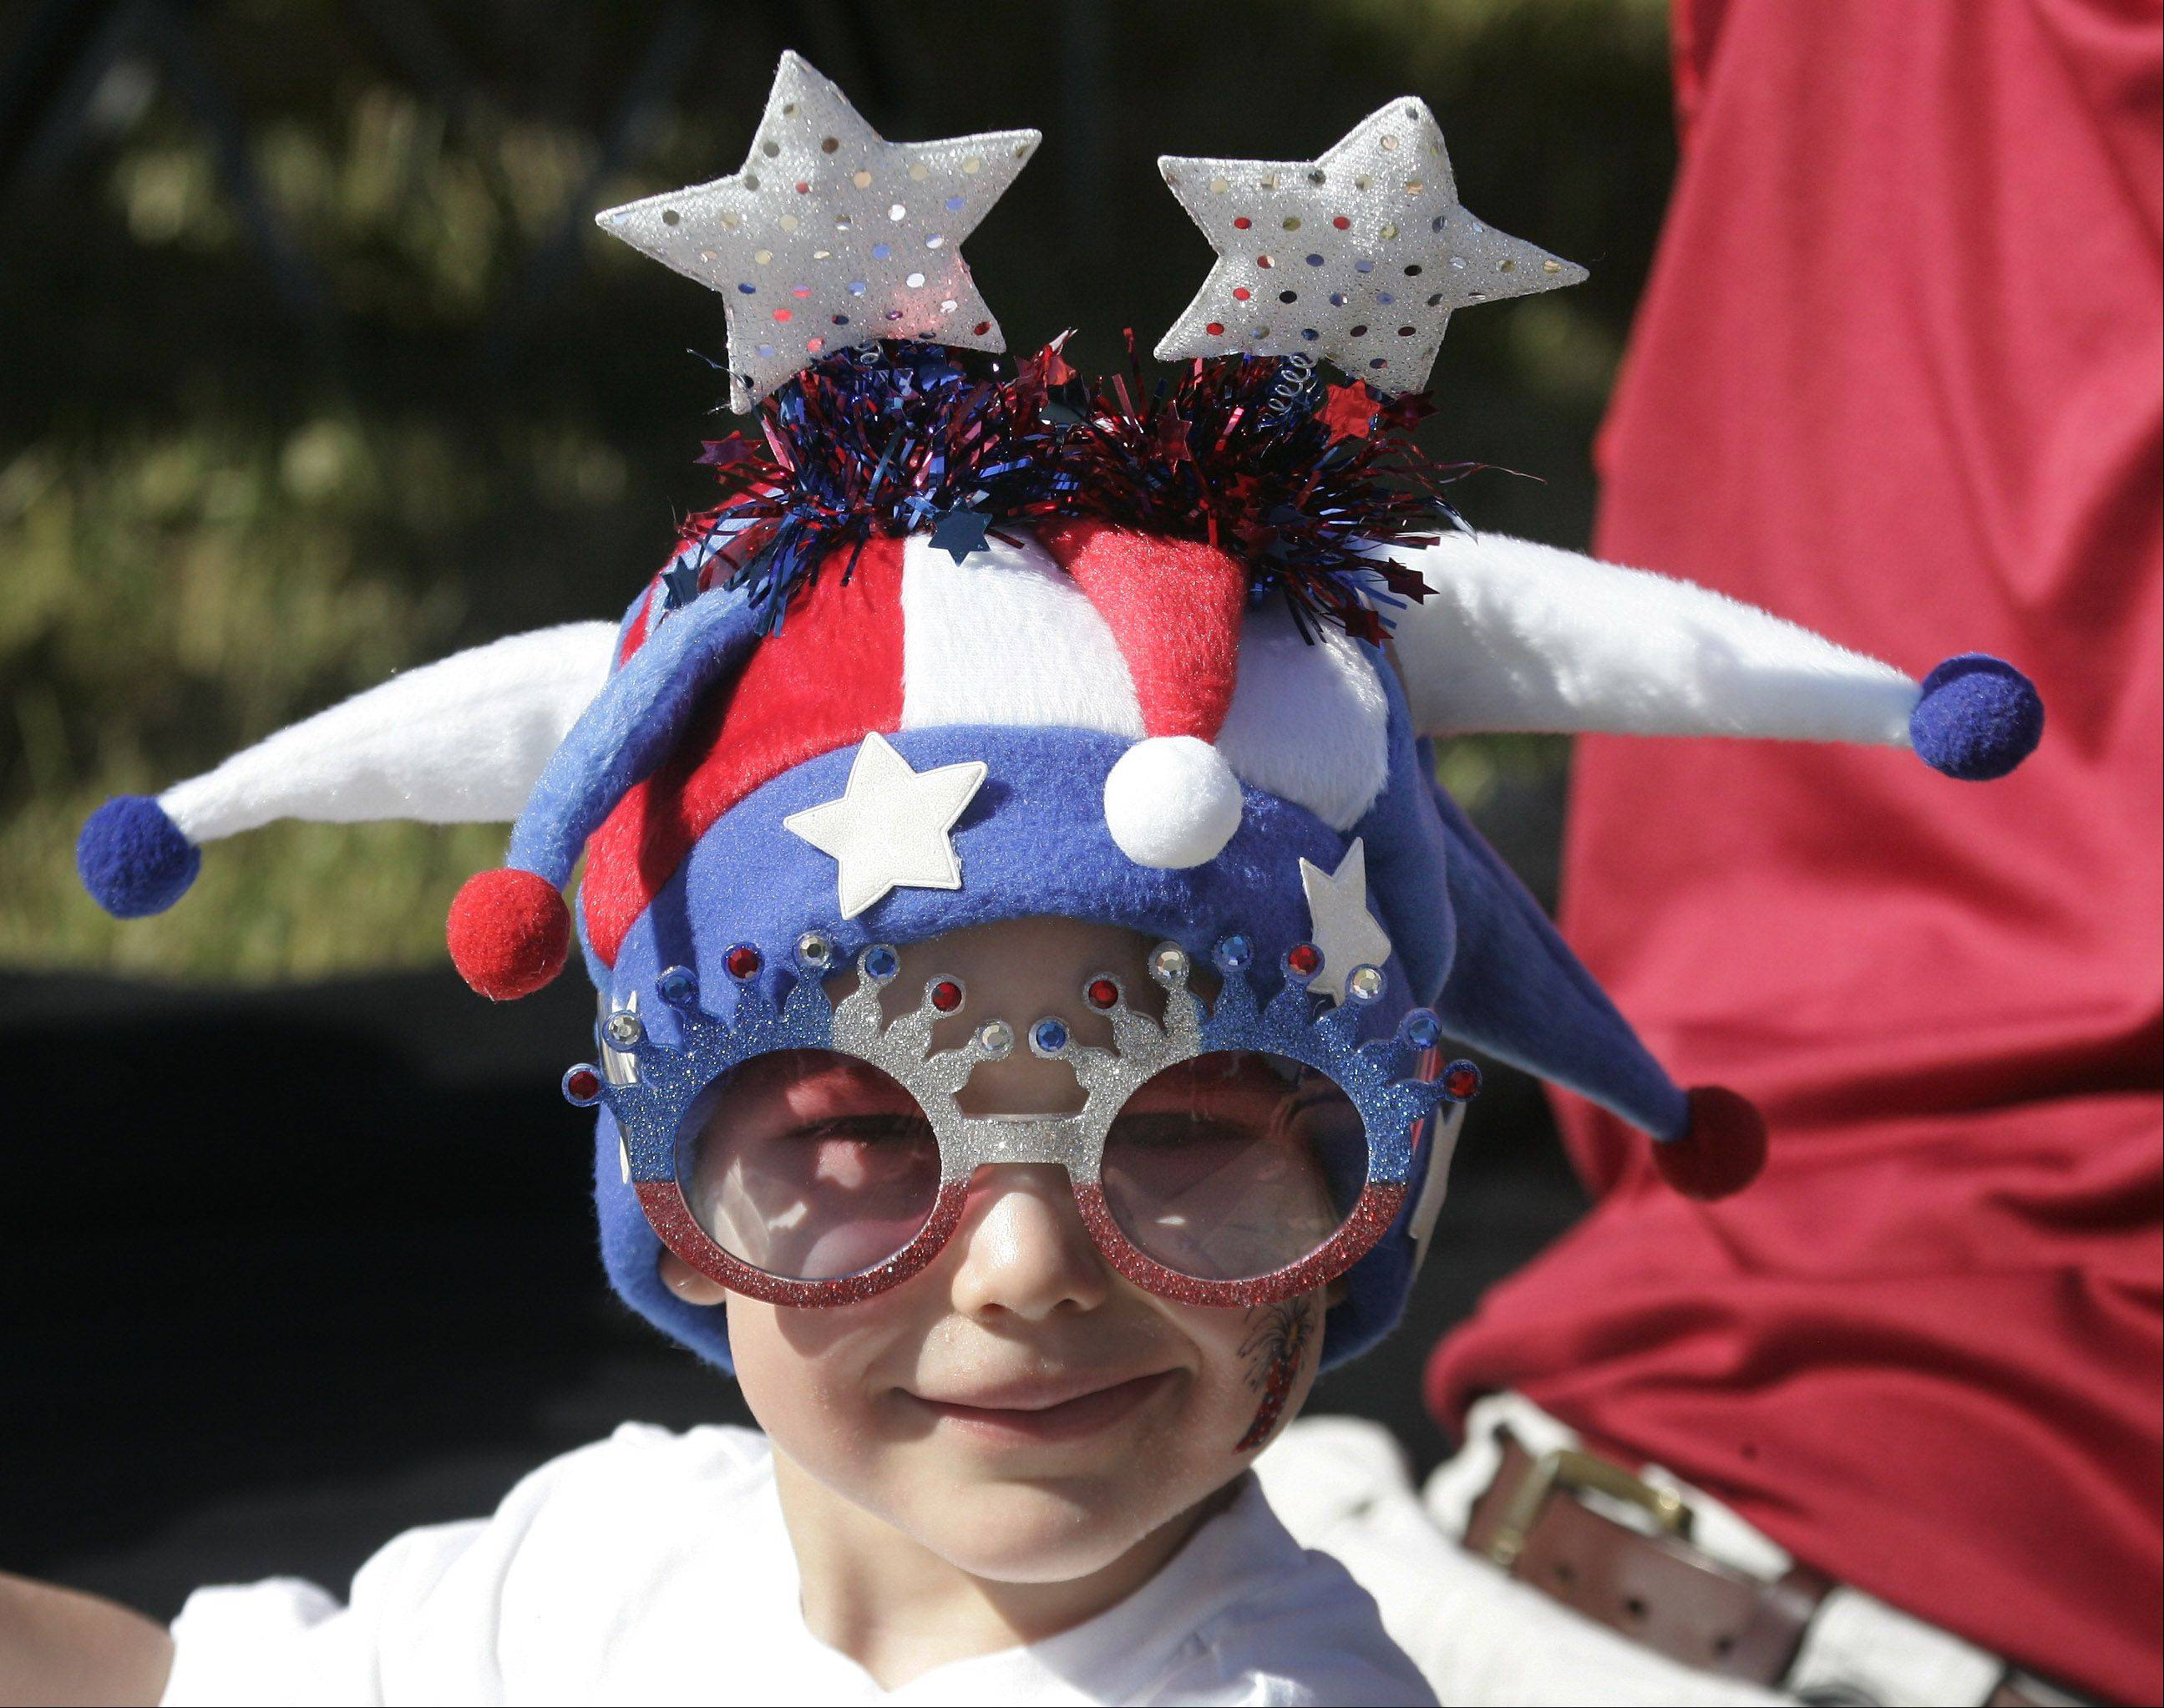 Caden Longdon, 4, watches the parade dressed in holiday clothes along Deerpath Drive during the Vernon Hills Fourth of July parade Monday.